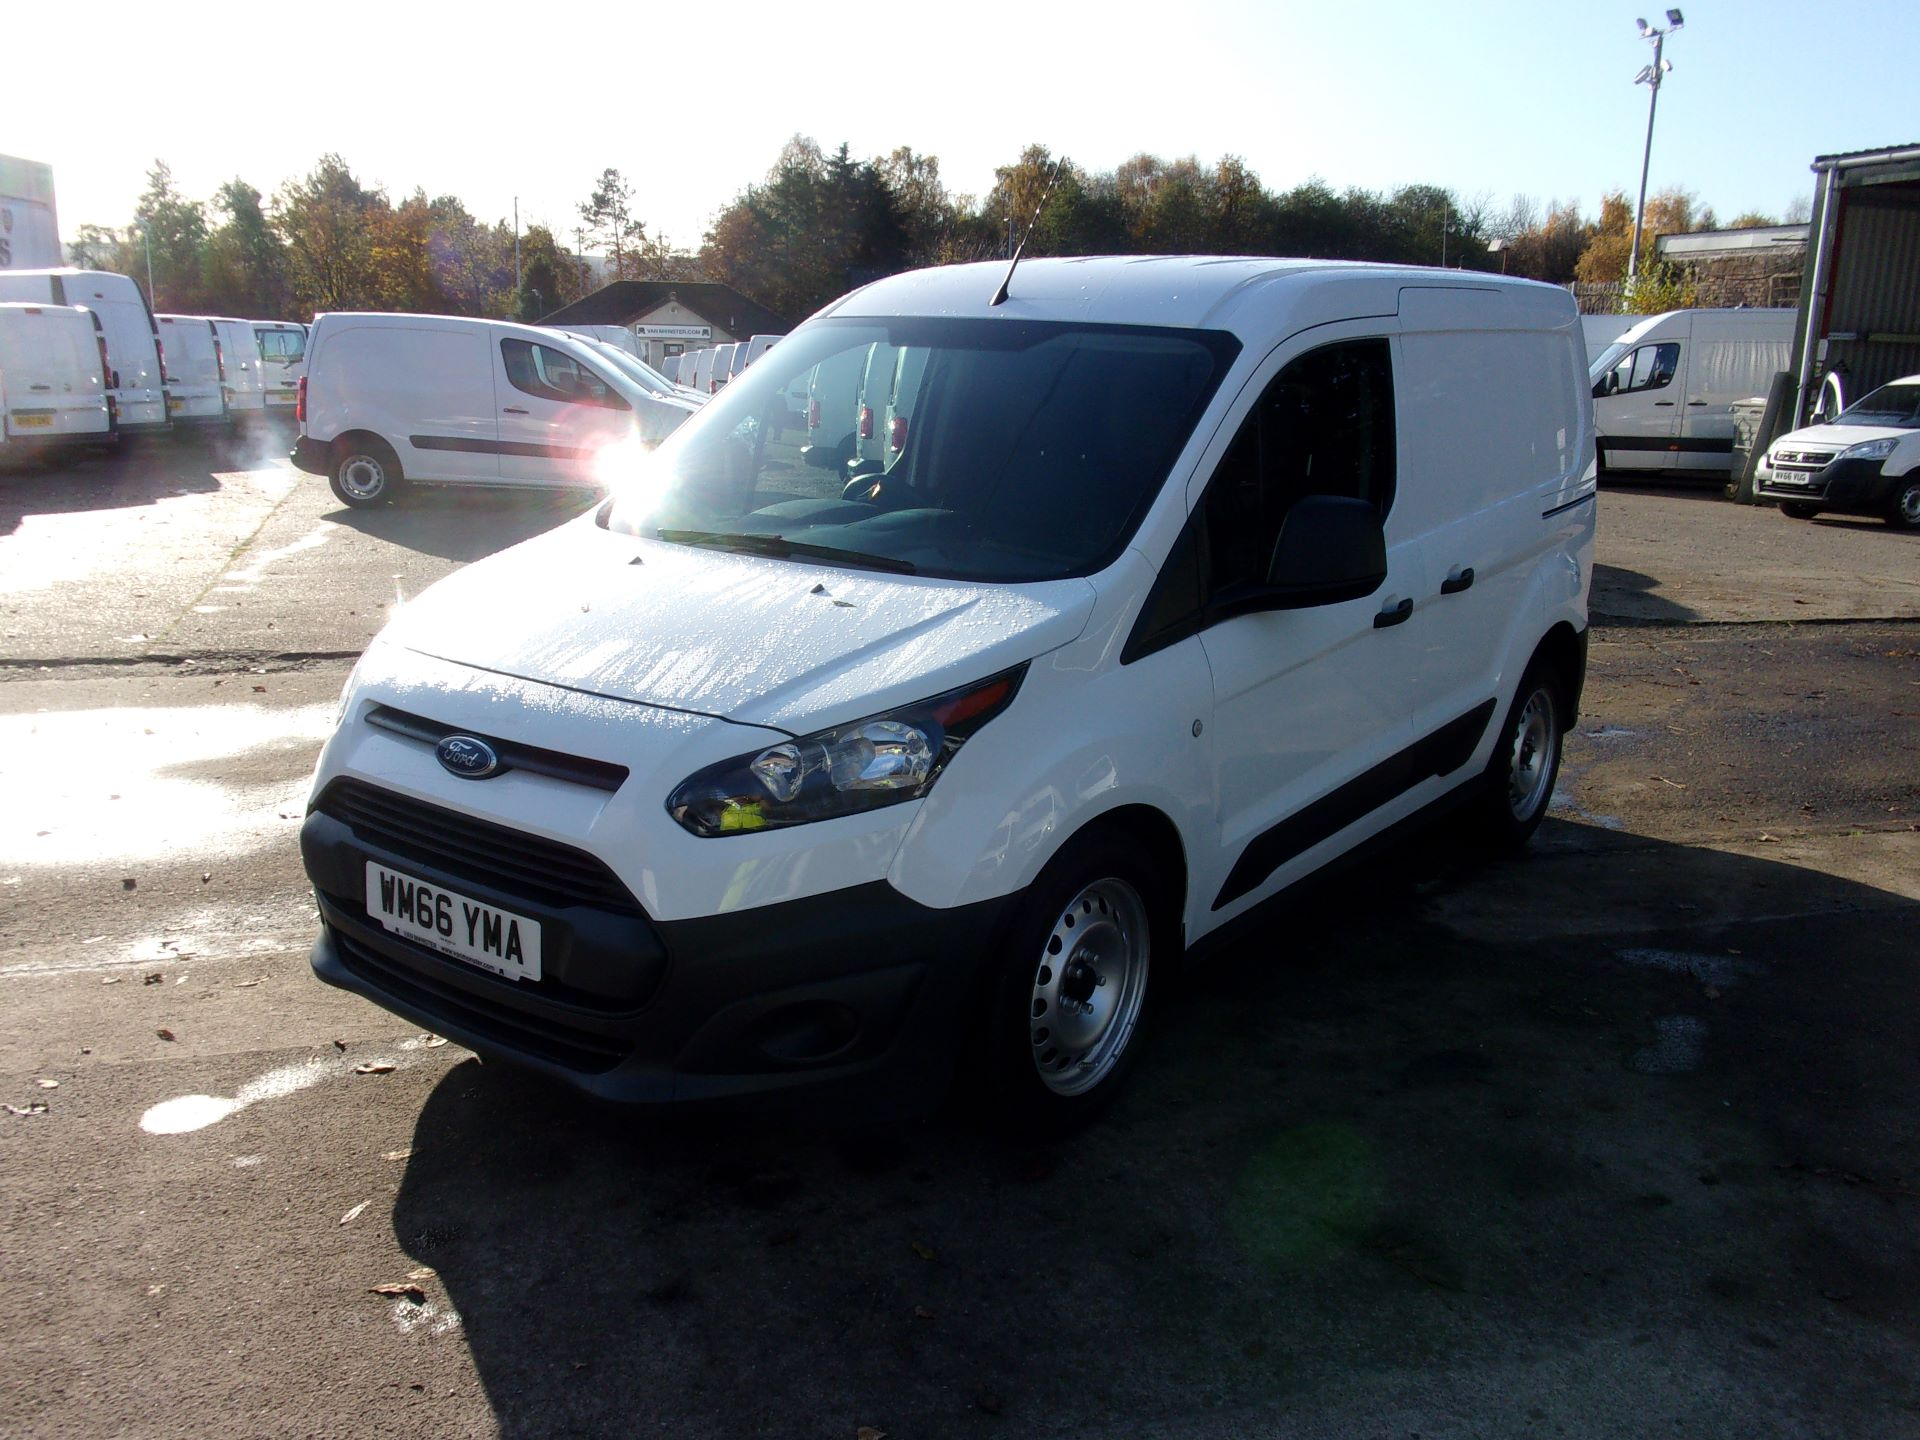 2016 Ford Transit Connect 200 L1 DIESEL 1.5 TDCI 75PS VAN (WM66YMA) Image 14